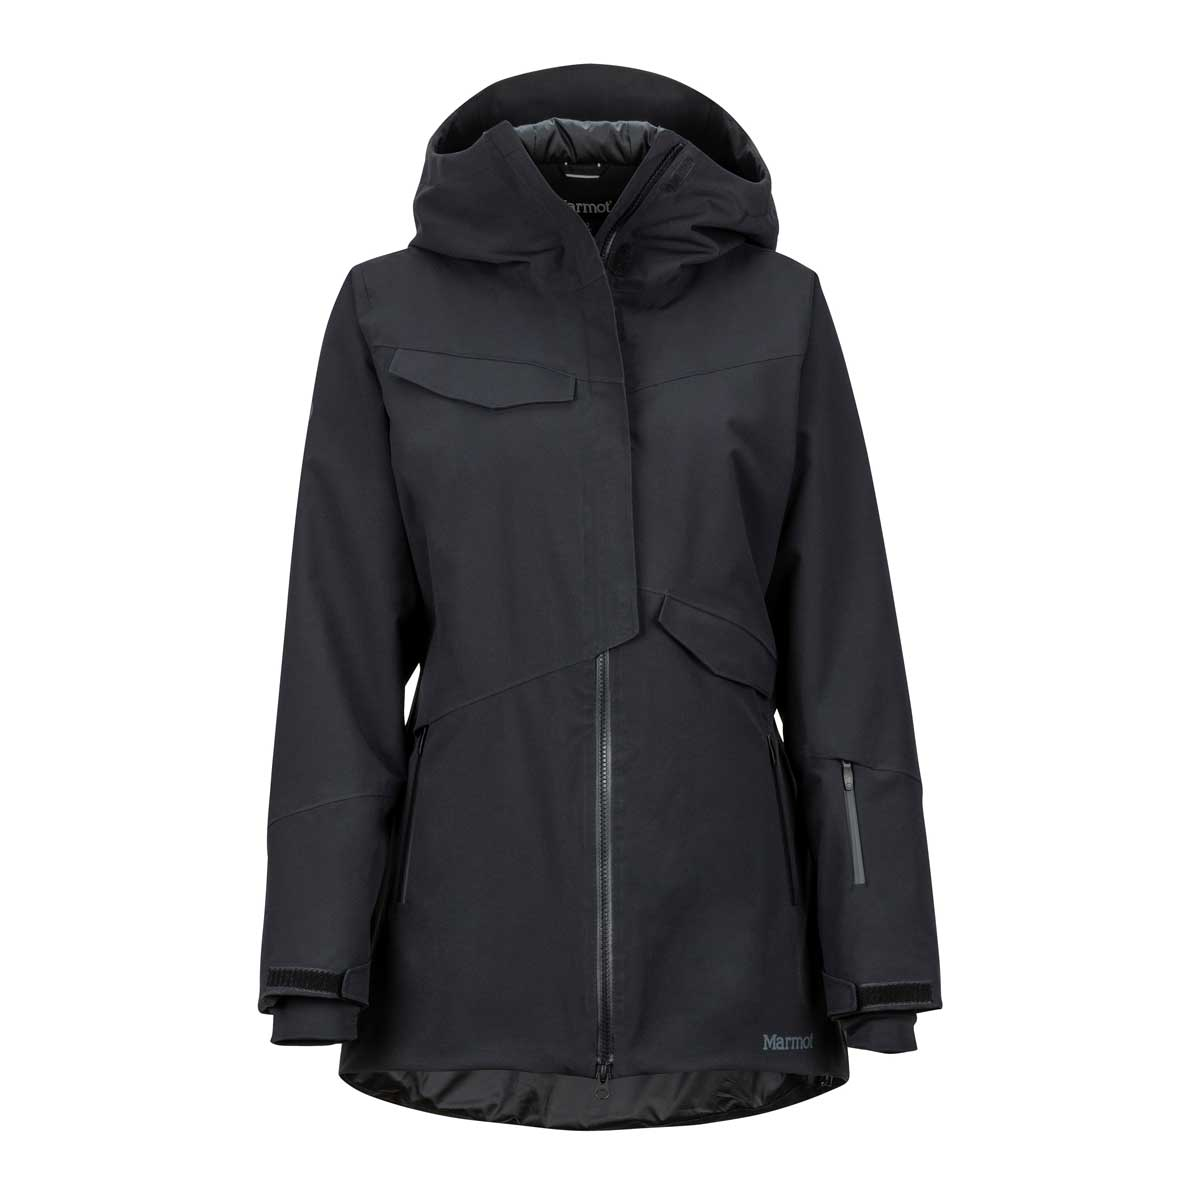 Marmot Women's Ventina Jacket in Black